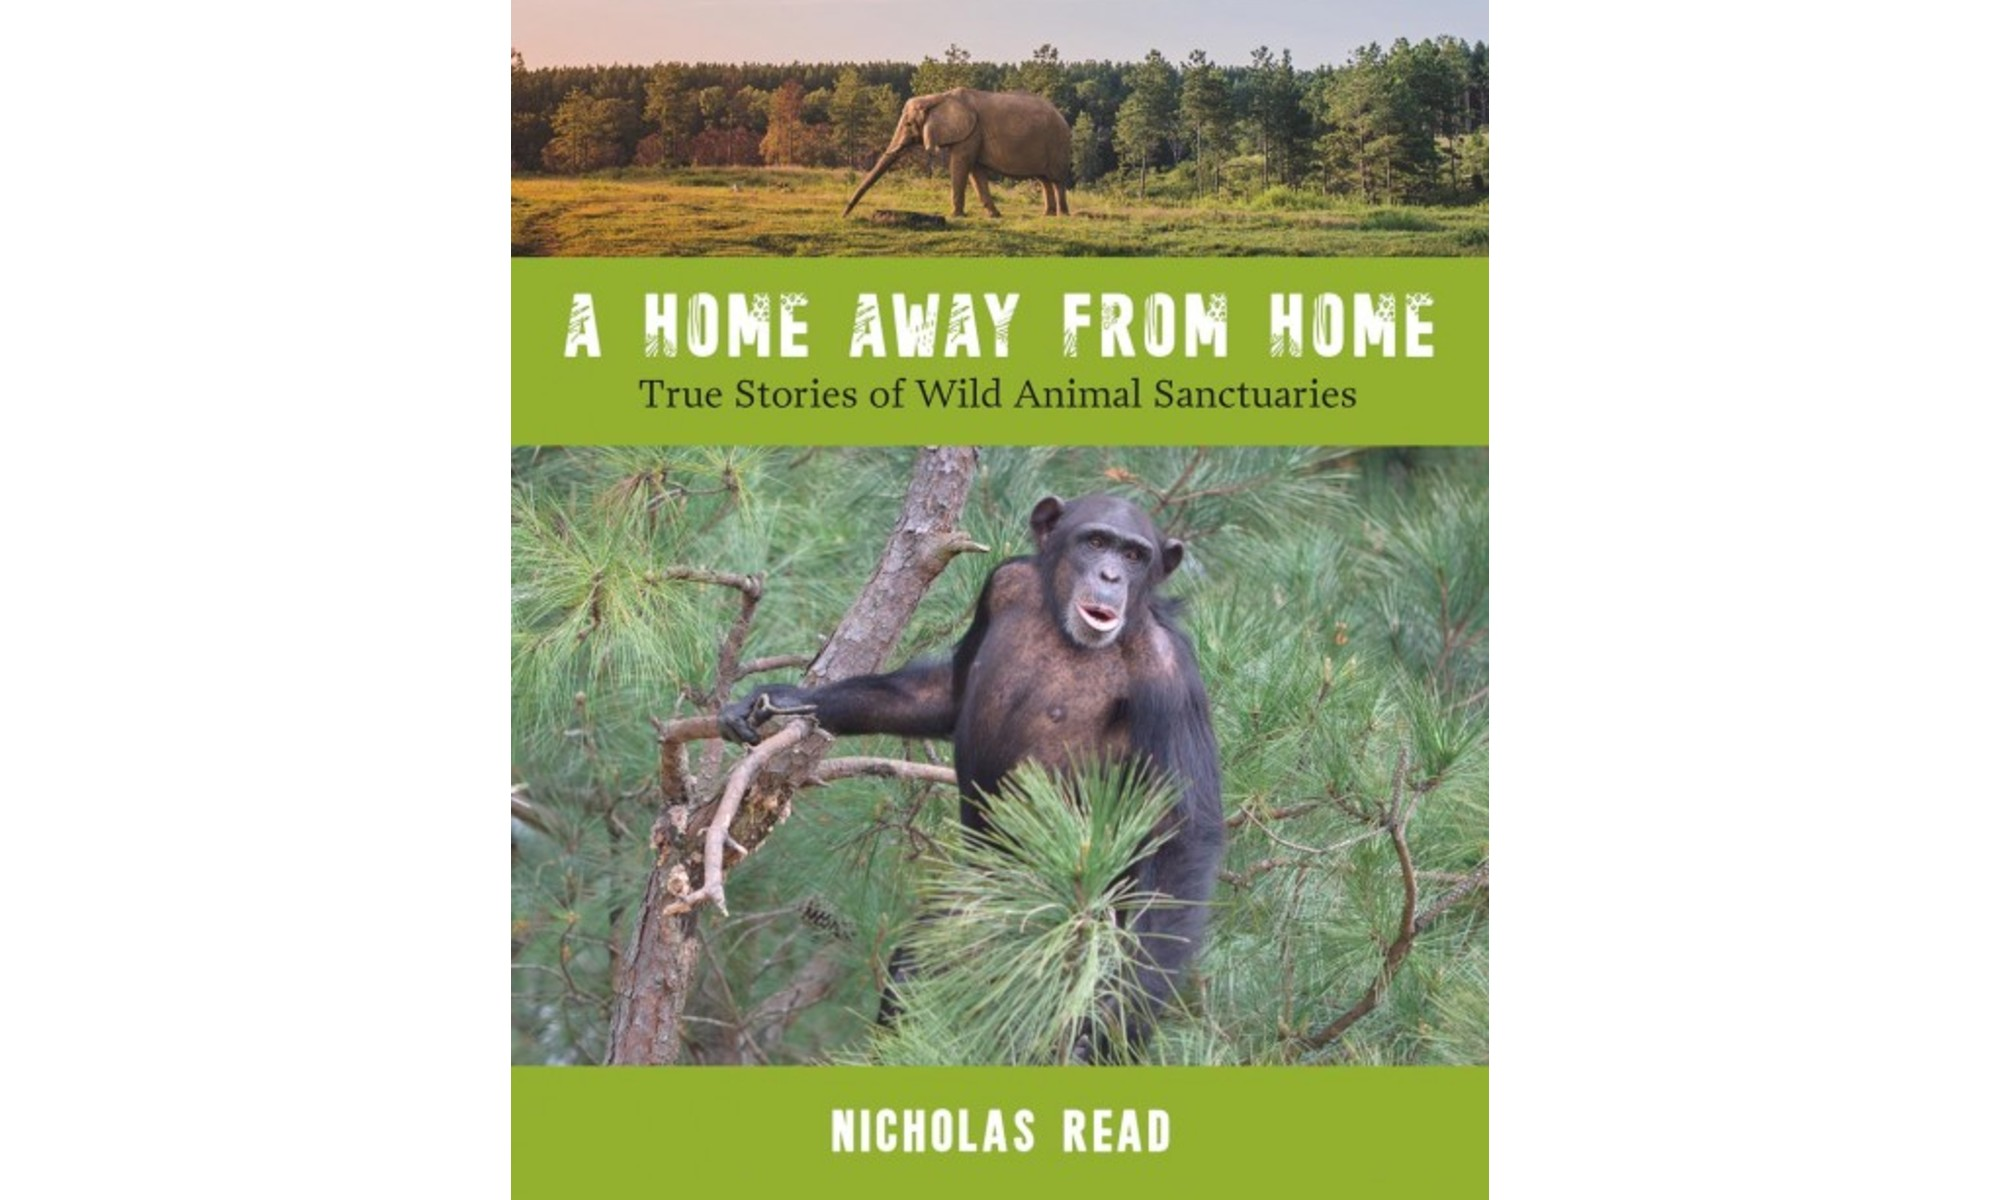 The cover of A Home Away From Home by Nicholas Read